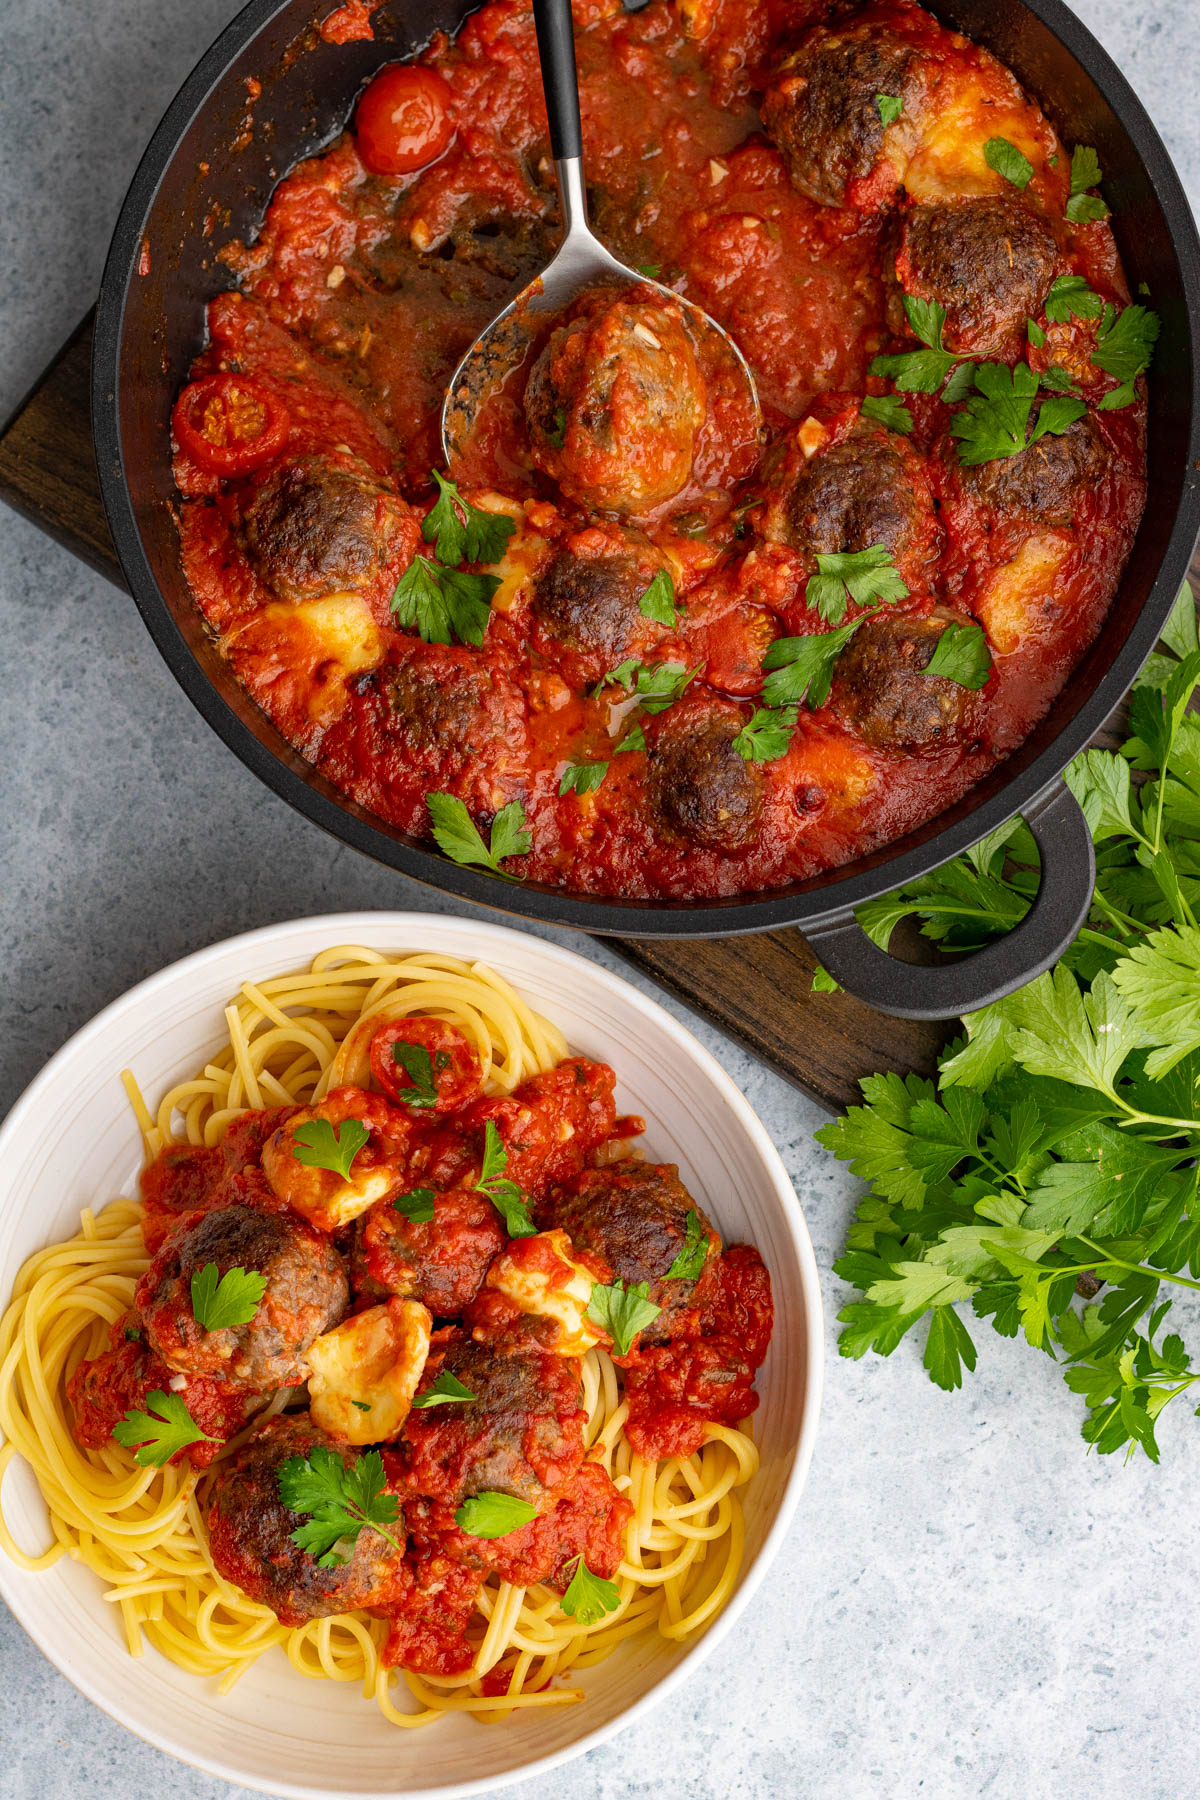 A pan of Oven Baked Meatballs in a rich tomato sauce beside a bowl of spaghetti and meatballs.